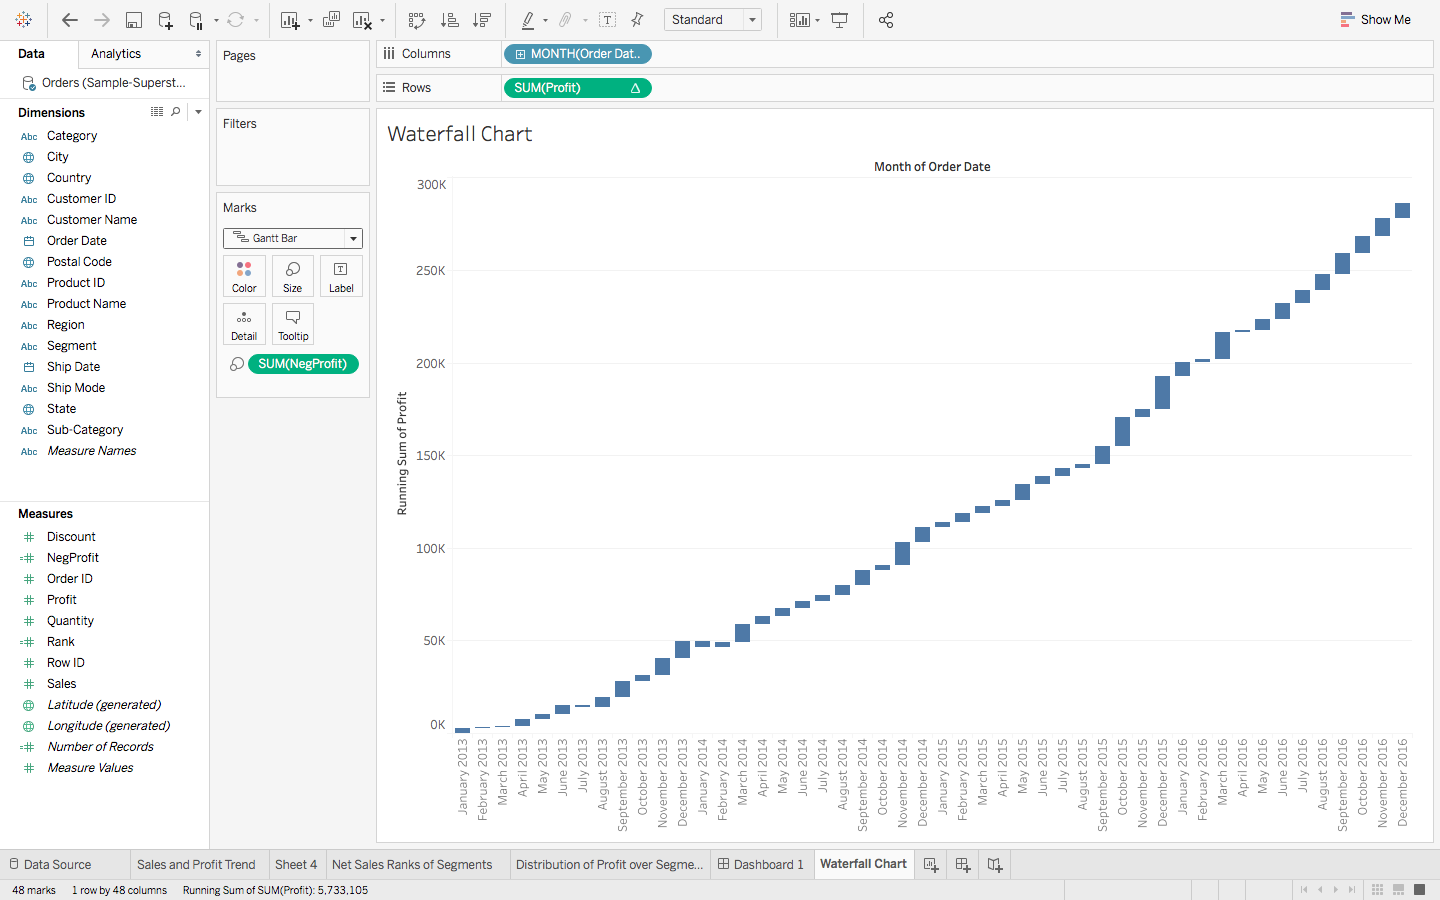 A Step By Step Guide To Learn Advanced Tableau For Data Science